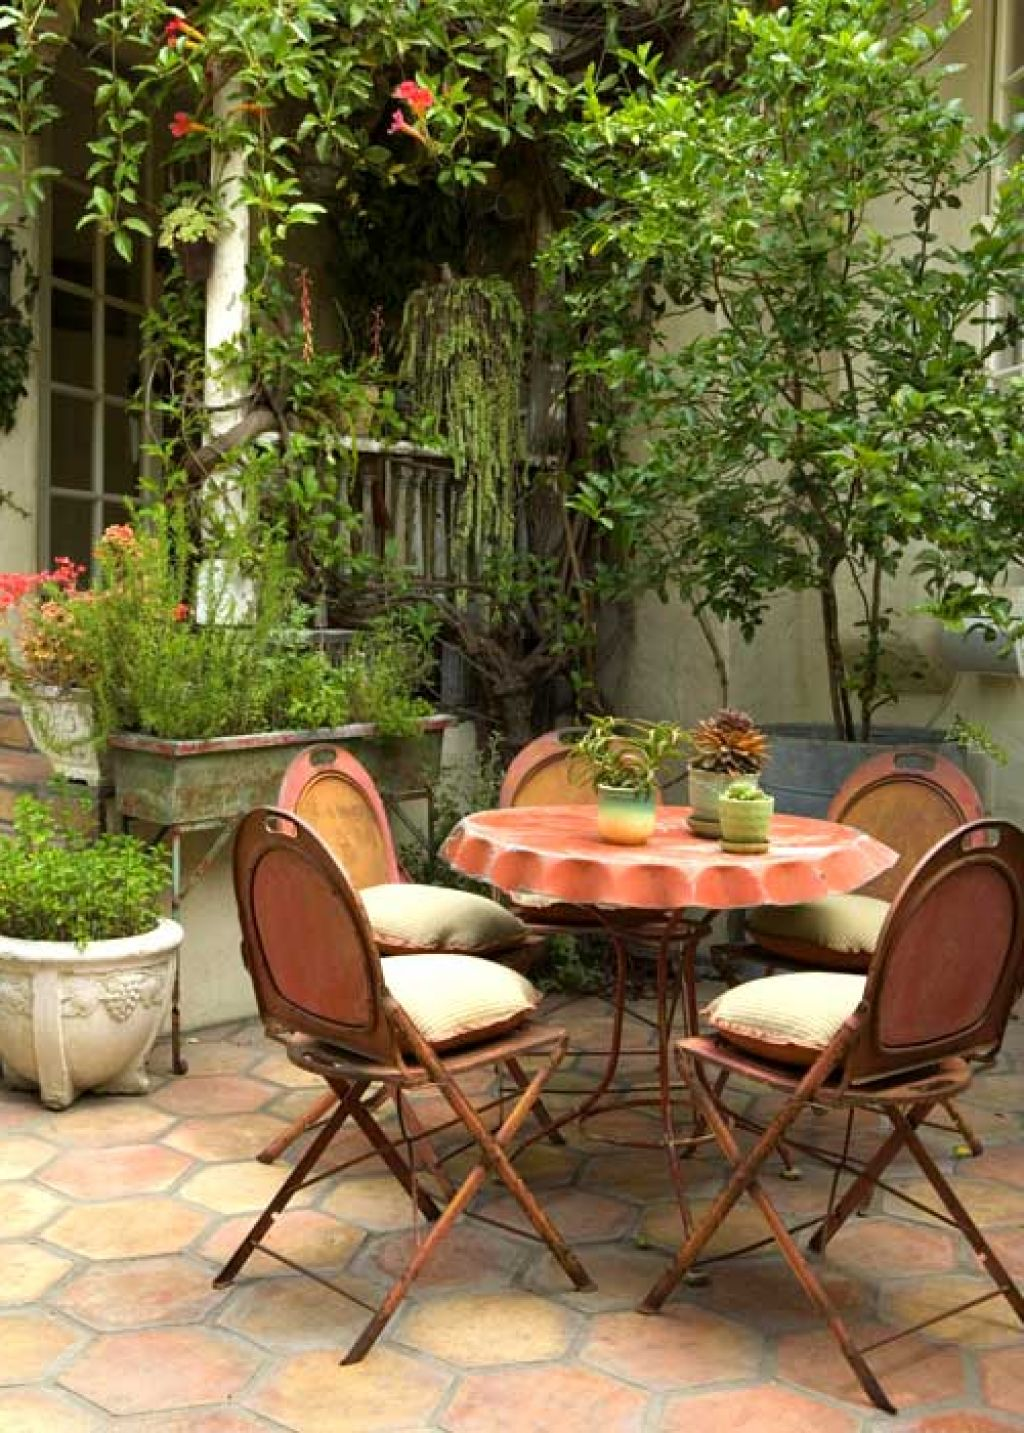 Patio Table And Chairs For Small Spaces: outdoor patio ideas for small spaces